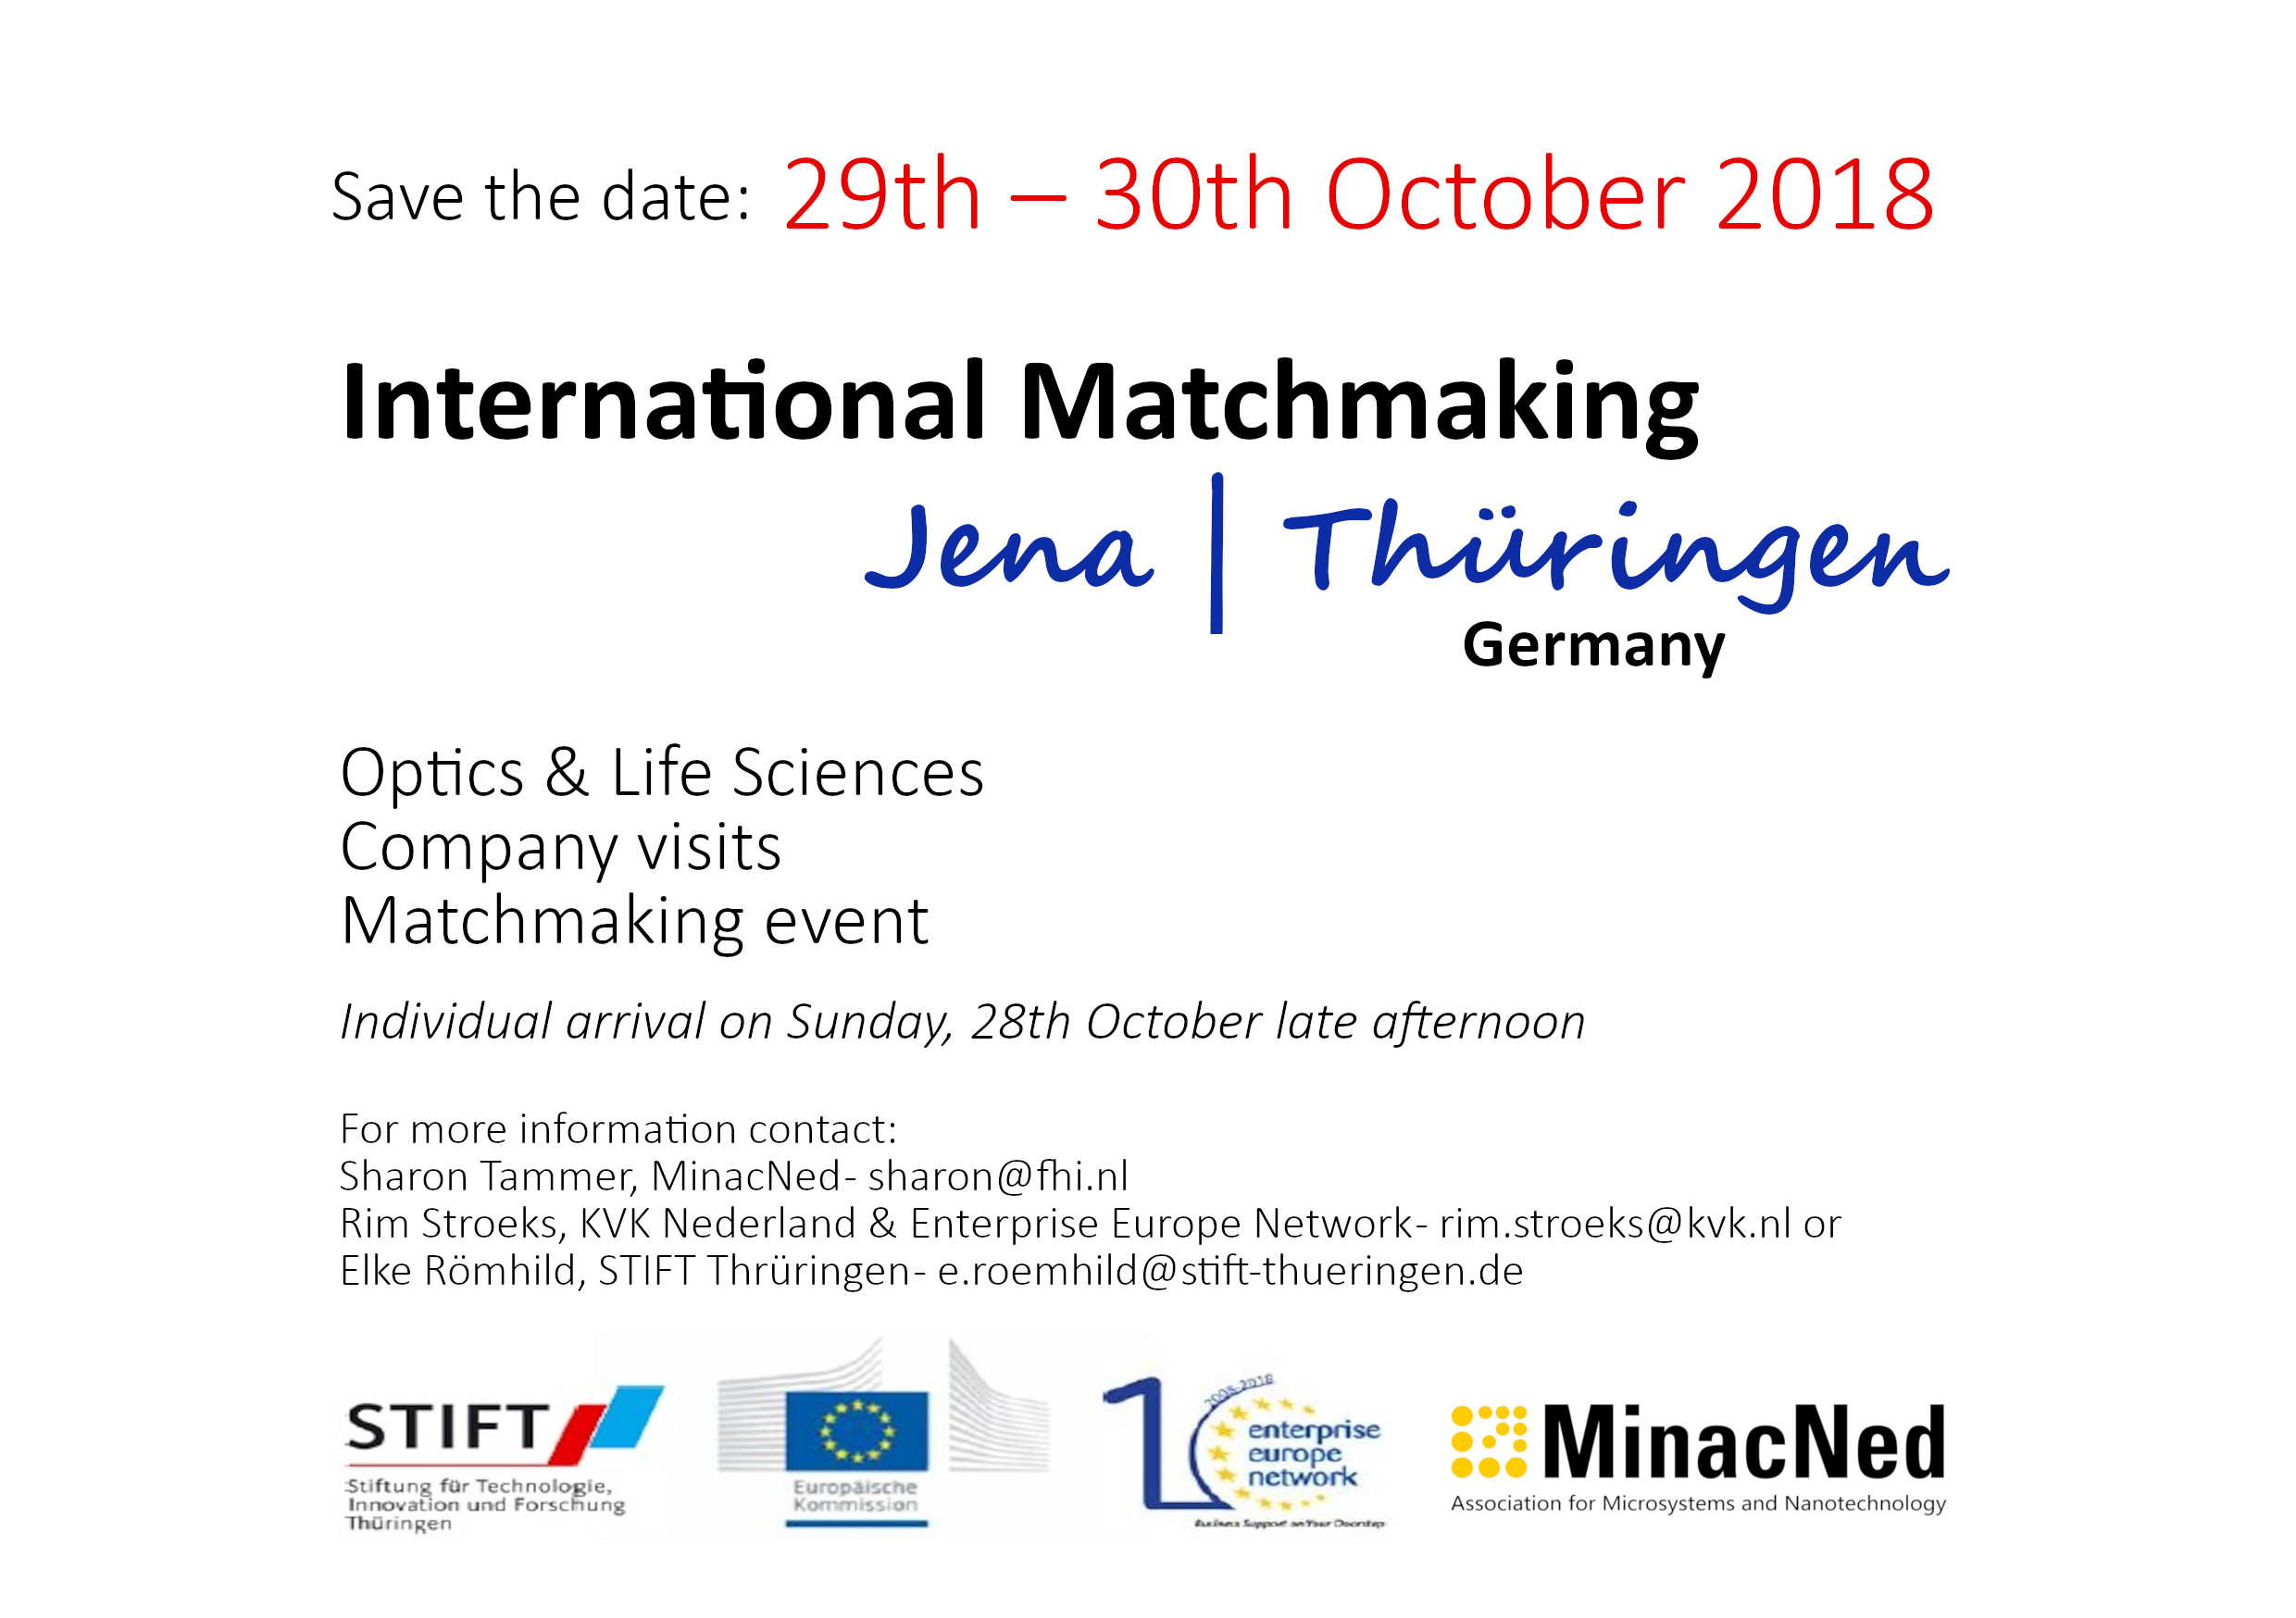 International matchmaking event